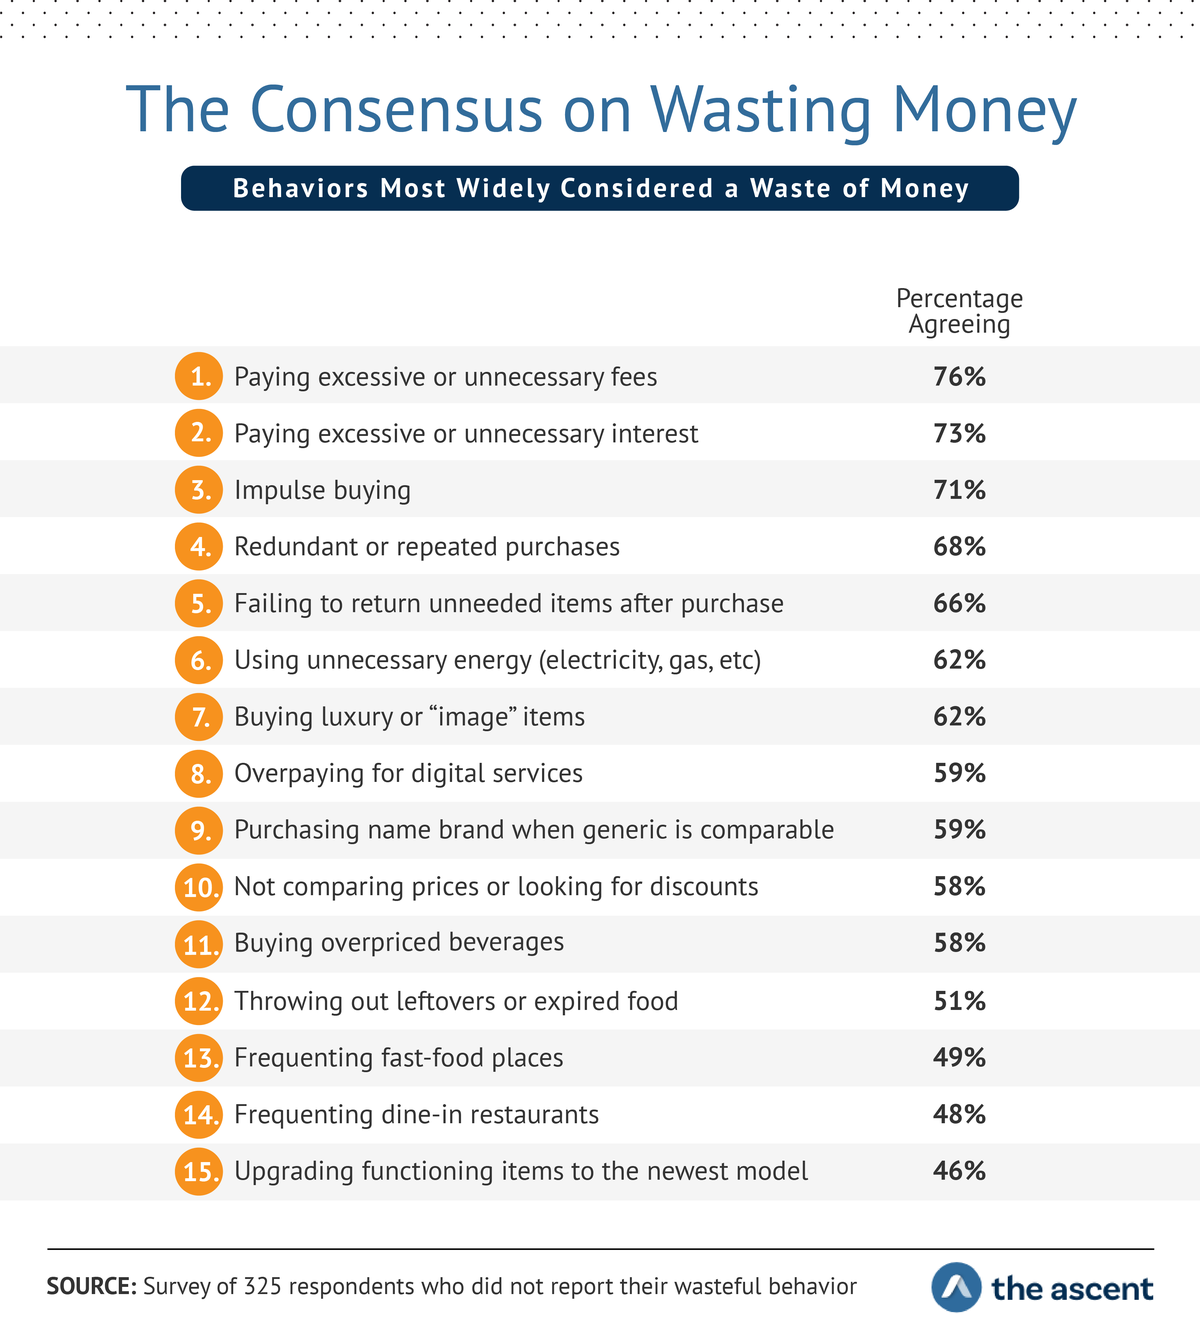 "The Consensus on Wasting Money: Behaviors Most Widely Considered a Waste of Money...  Paying excessive or unnecessary fees	76% Paying excessive or unnecessary interest	73% Impulse buying	71% Redundant or duplicate purchases	68% Failing to return unneeded items after purchase	66% Using unnecessary energy	62% Buying luxury or ""image"" items	62% Overpaying for digital services	59% Purchasing name brand when a generic is equally good	59% Not comparing prices or looking for discounts	58% Buying overpriced beverages	58% Throwing out leftovers or expired foods	51% Frequenting fast food places	49% Frequenting dine-in restaurants	48% Upgrading functioning items to the newest model	46%"